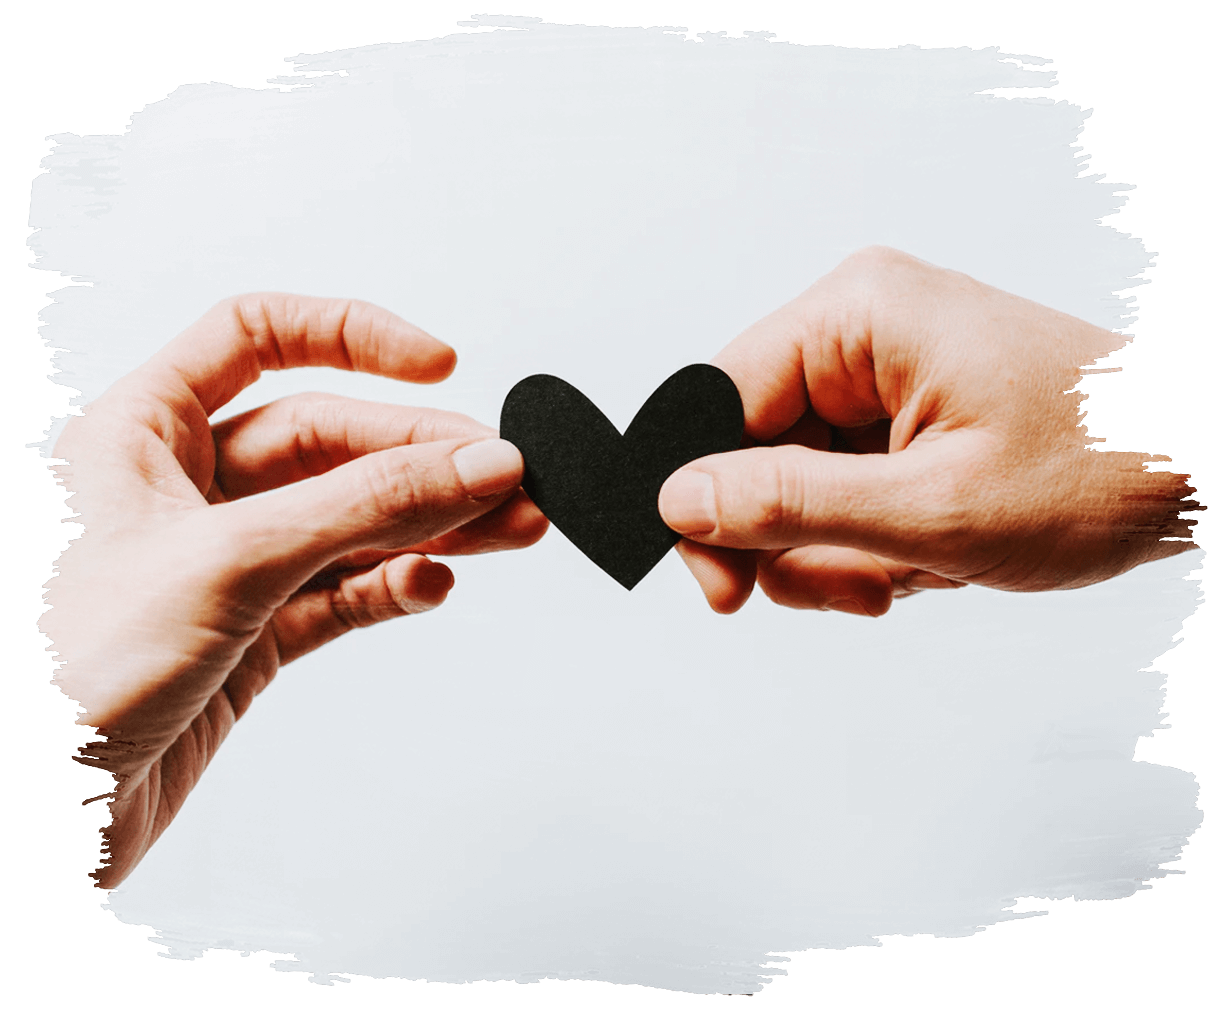 This is an image of a small black heart being held by two hands